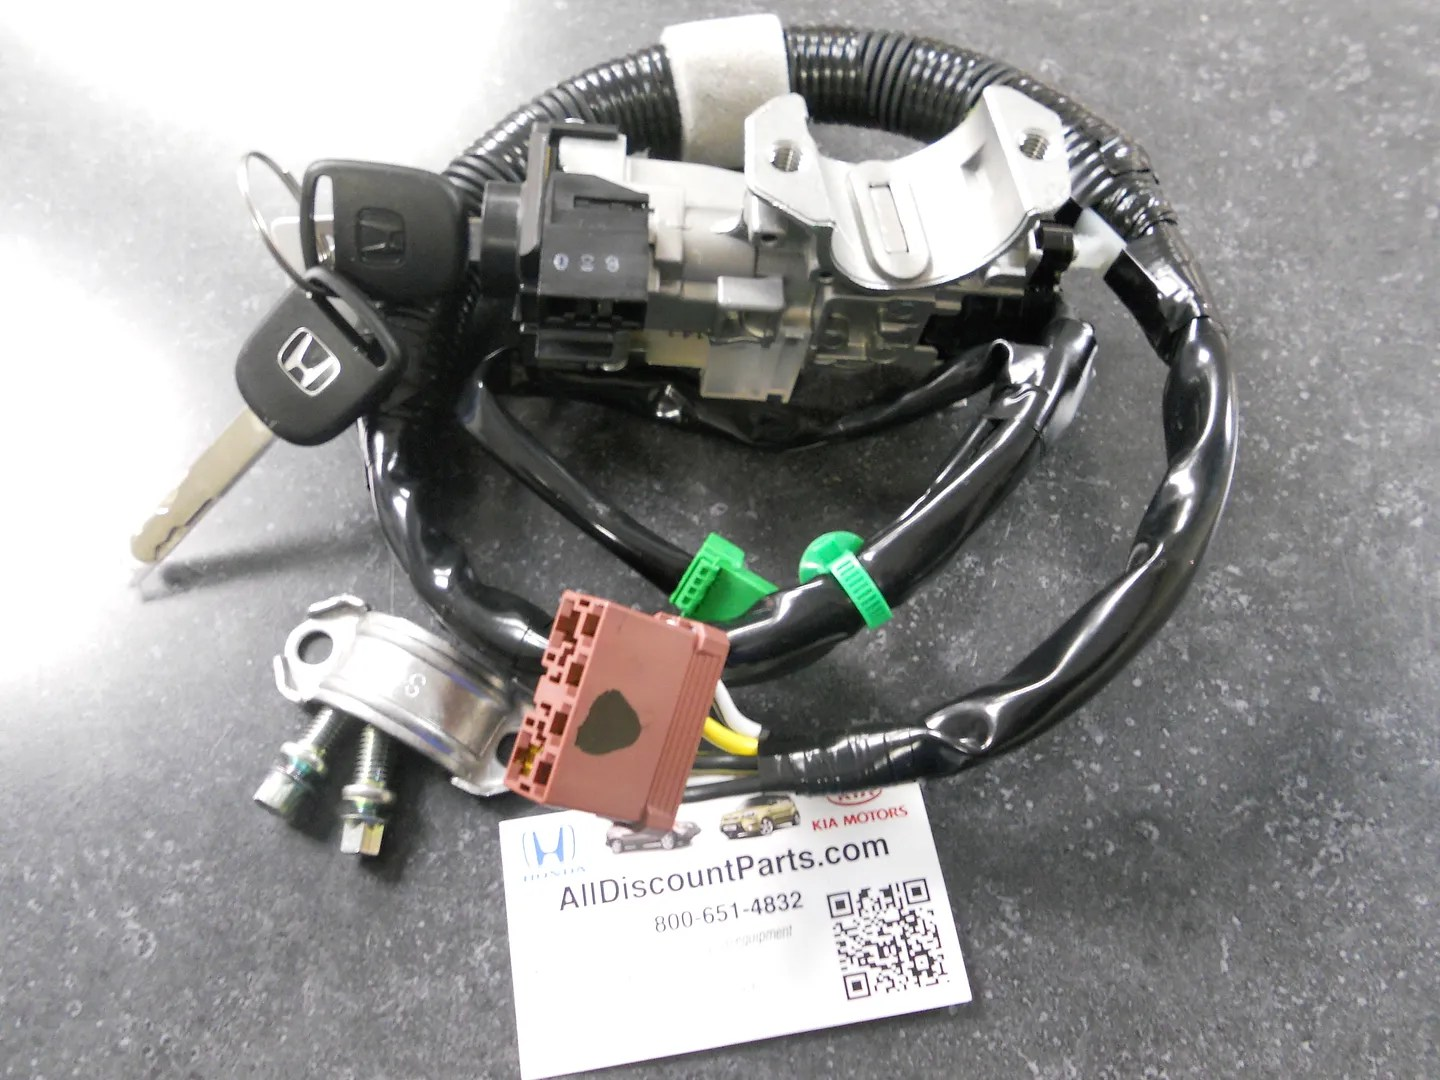 2004 honda odyssey ignition wiring diagram cal spa whisper power unit 2003 touch up paint upcomingcarshq